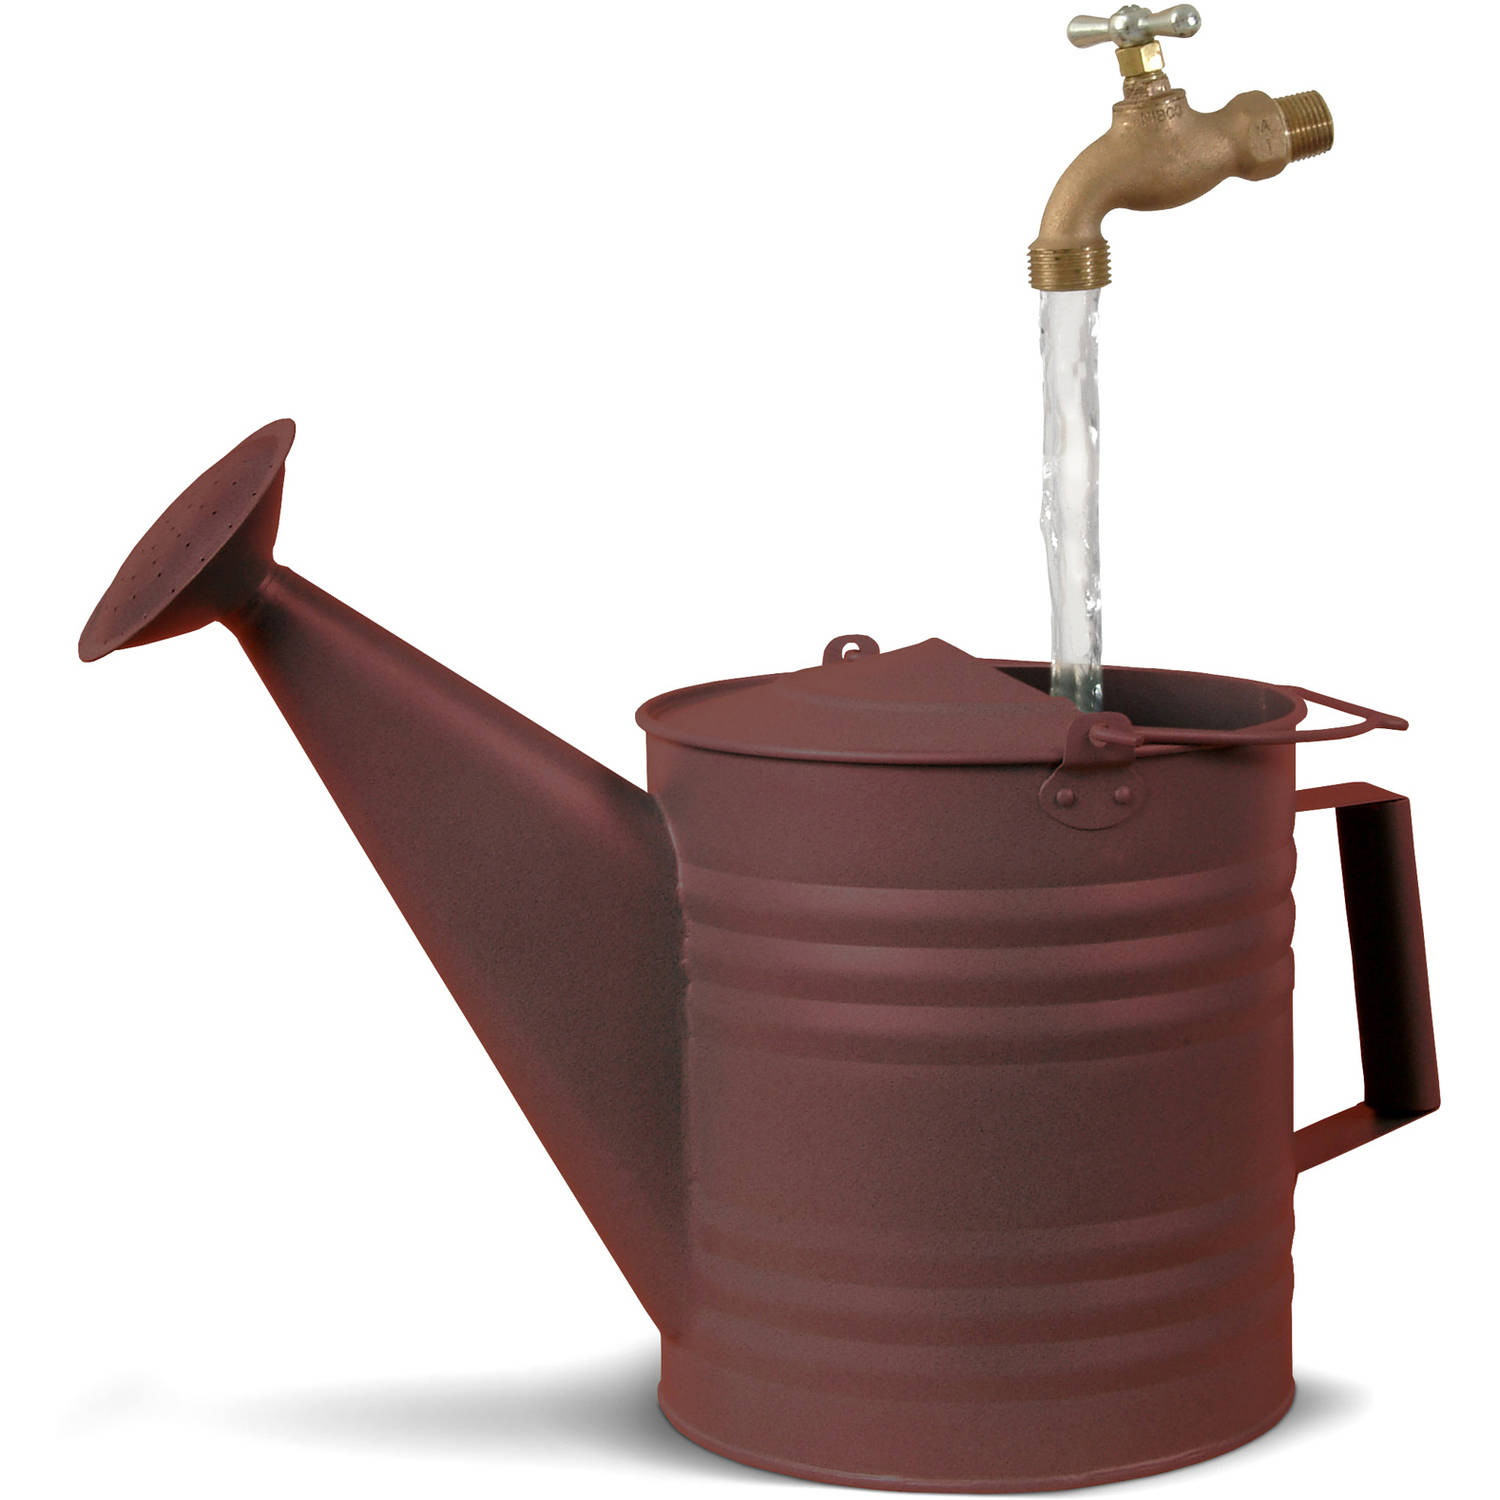 Universal Home and Garden NR-3 Fantasy Fountains New Rust Watering Can Fountain by Universal Home and Garden